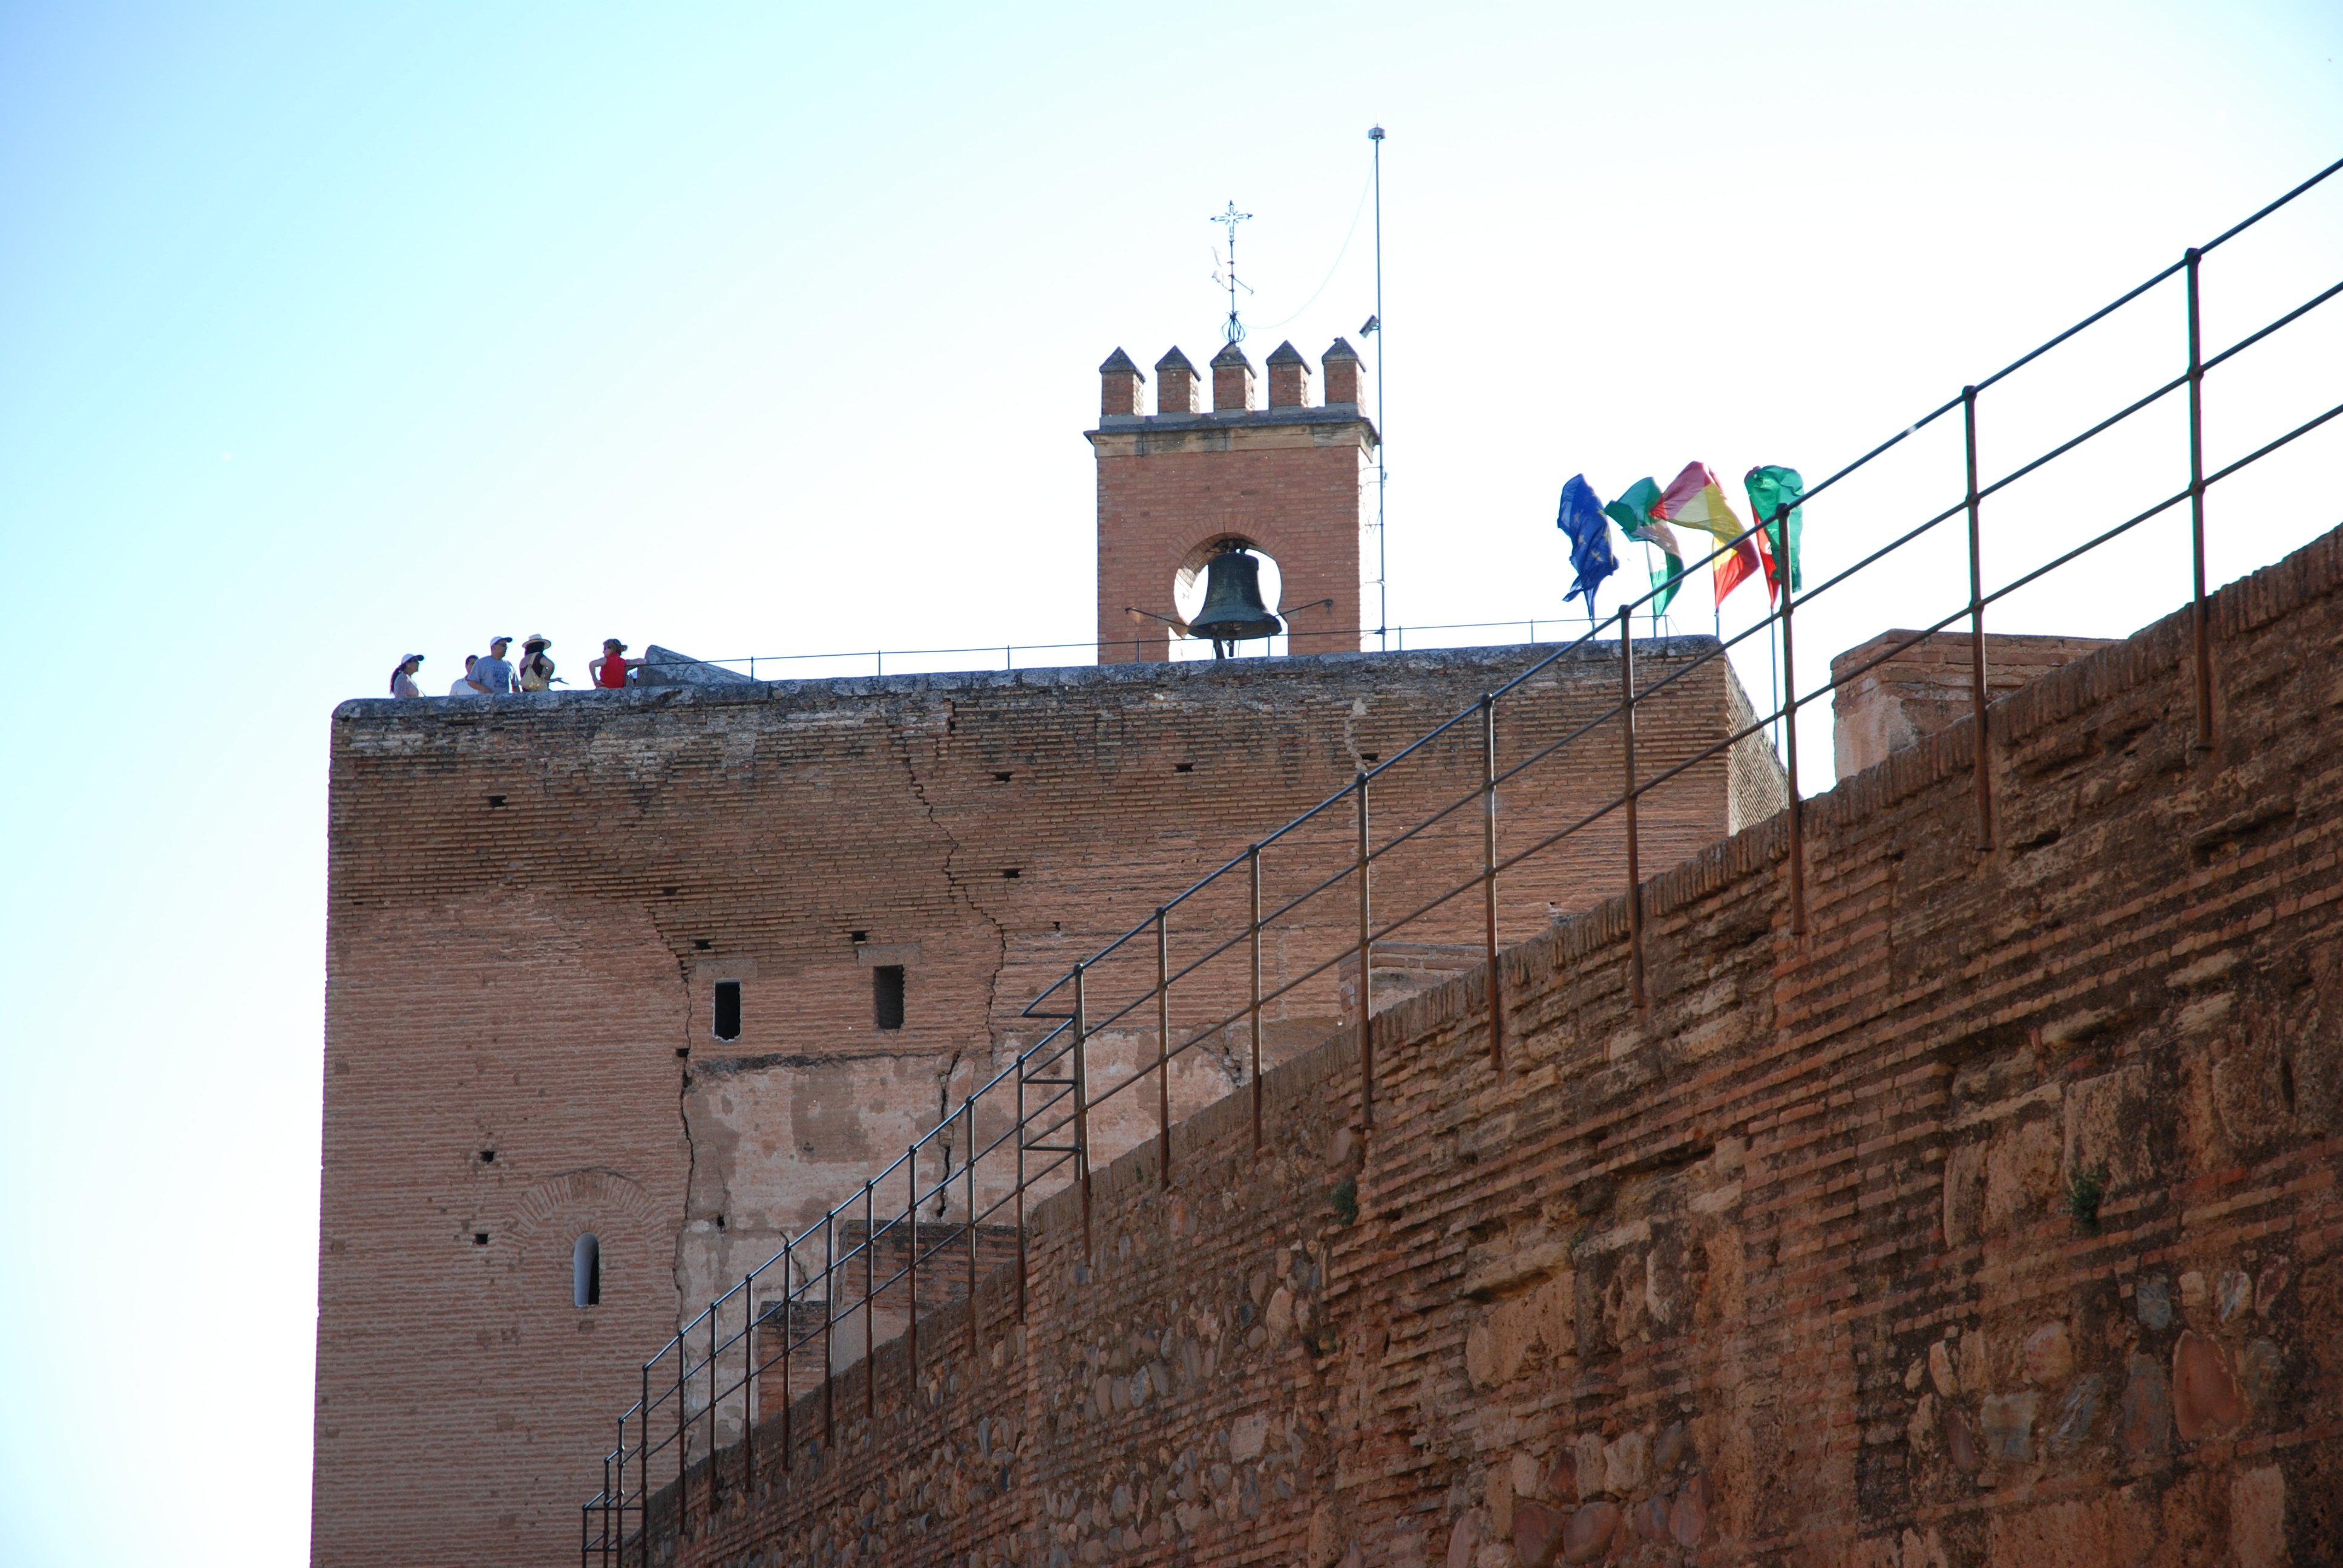 The Alhambra will be holding an open day with free admission to the Alcazaba on 2nd January